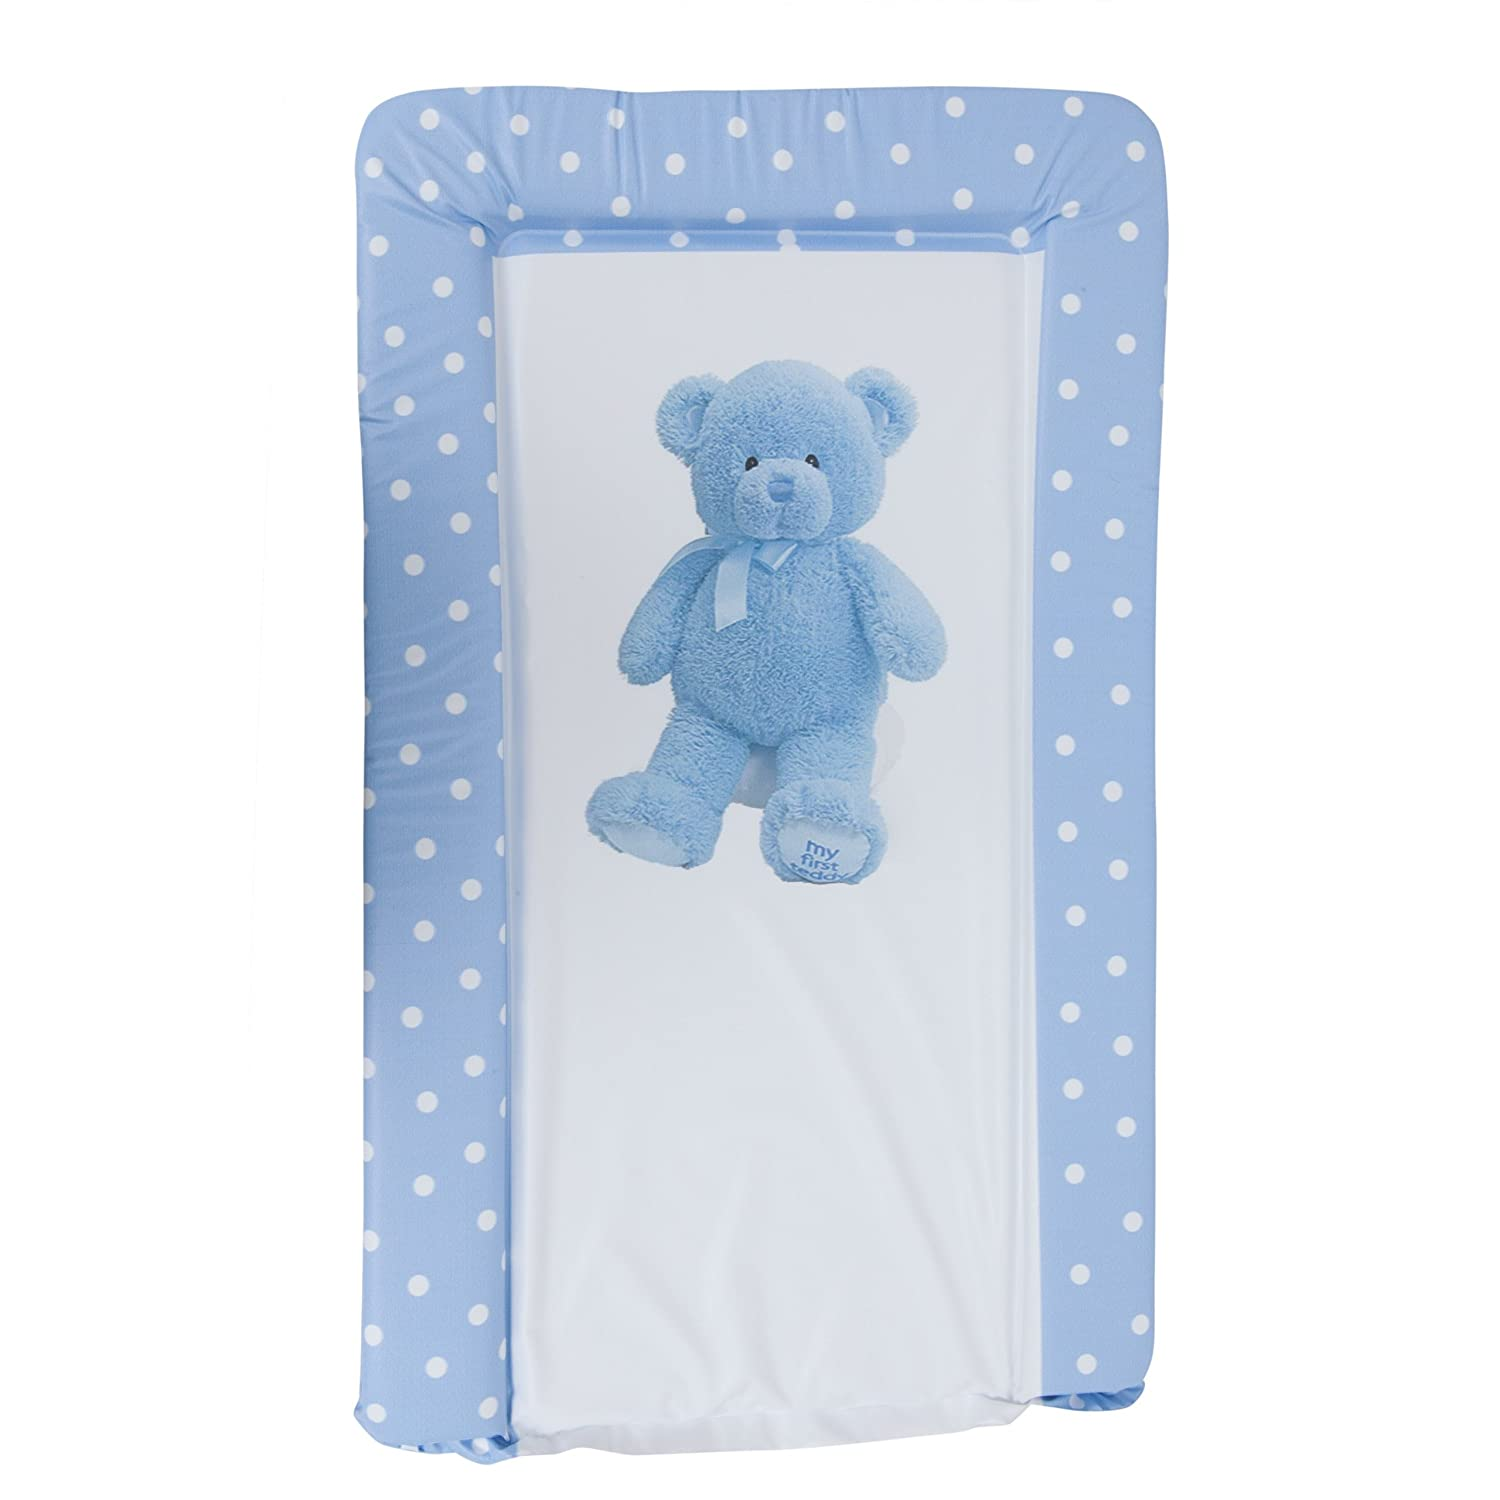 Baby Teddy Bear Deluxe Padded Easy Clean Changing Mat (Boy & Girl Options) (19in x 31in) (Blue) Universal Textiles